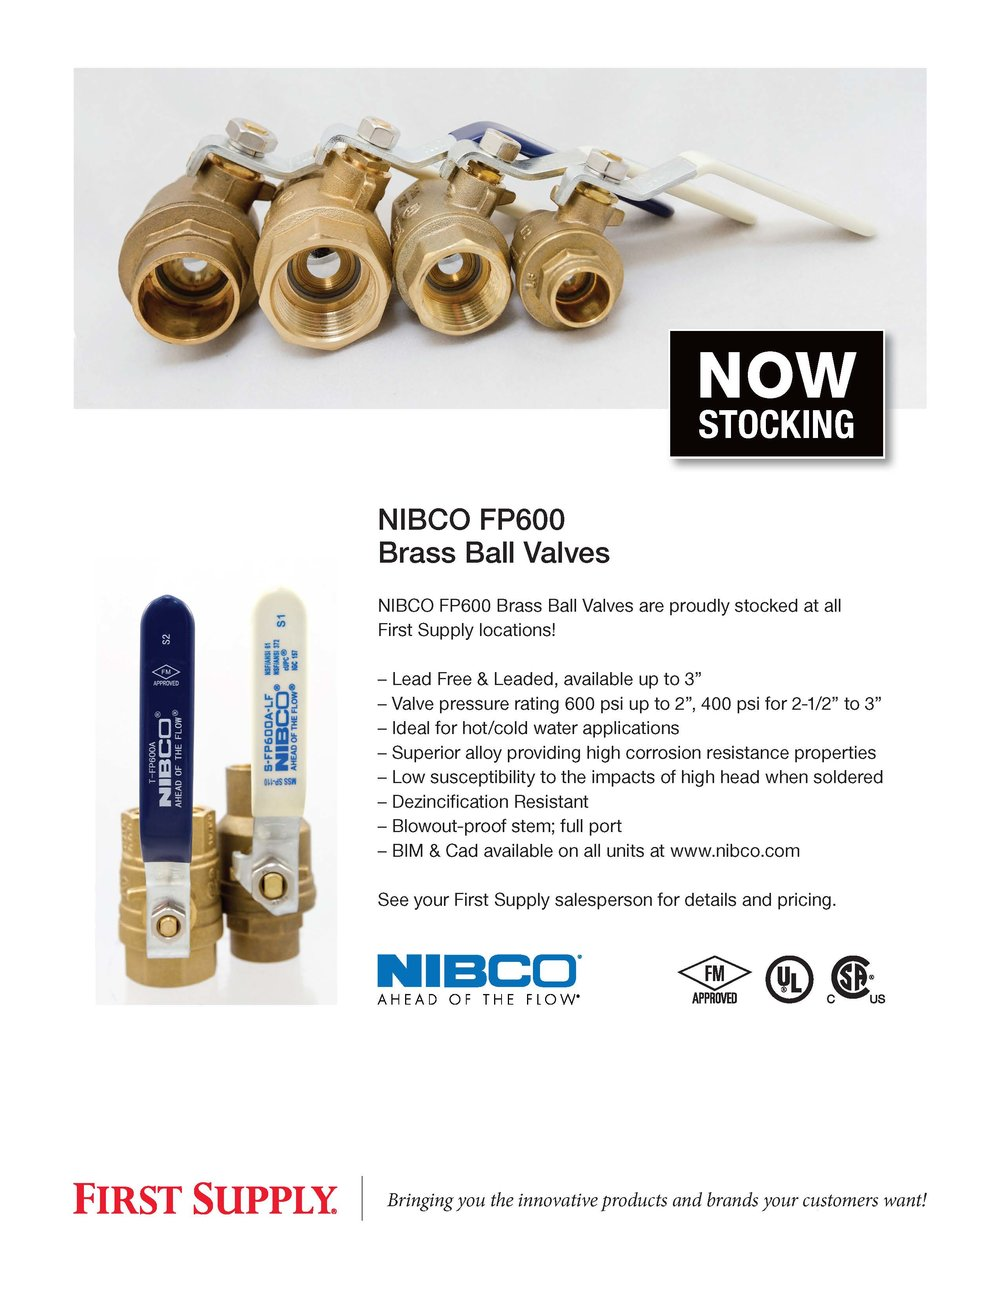 NIBCO - P600 Brass Ball Valves